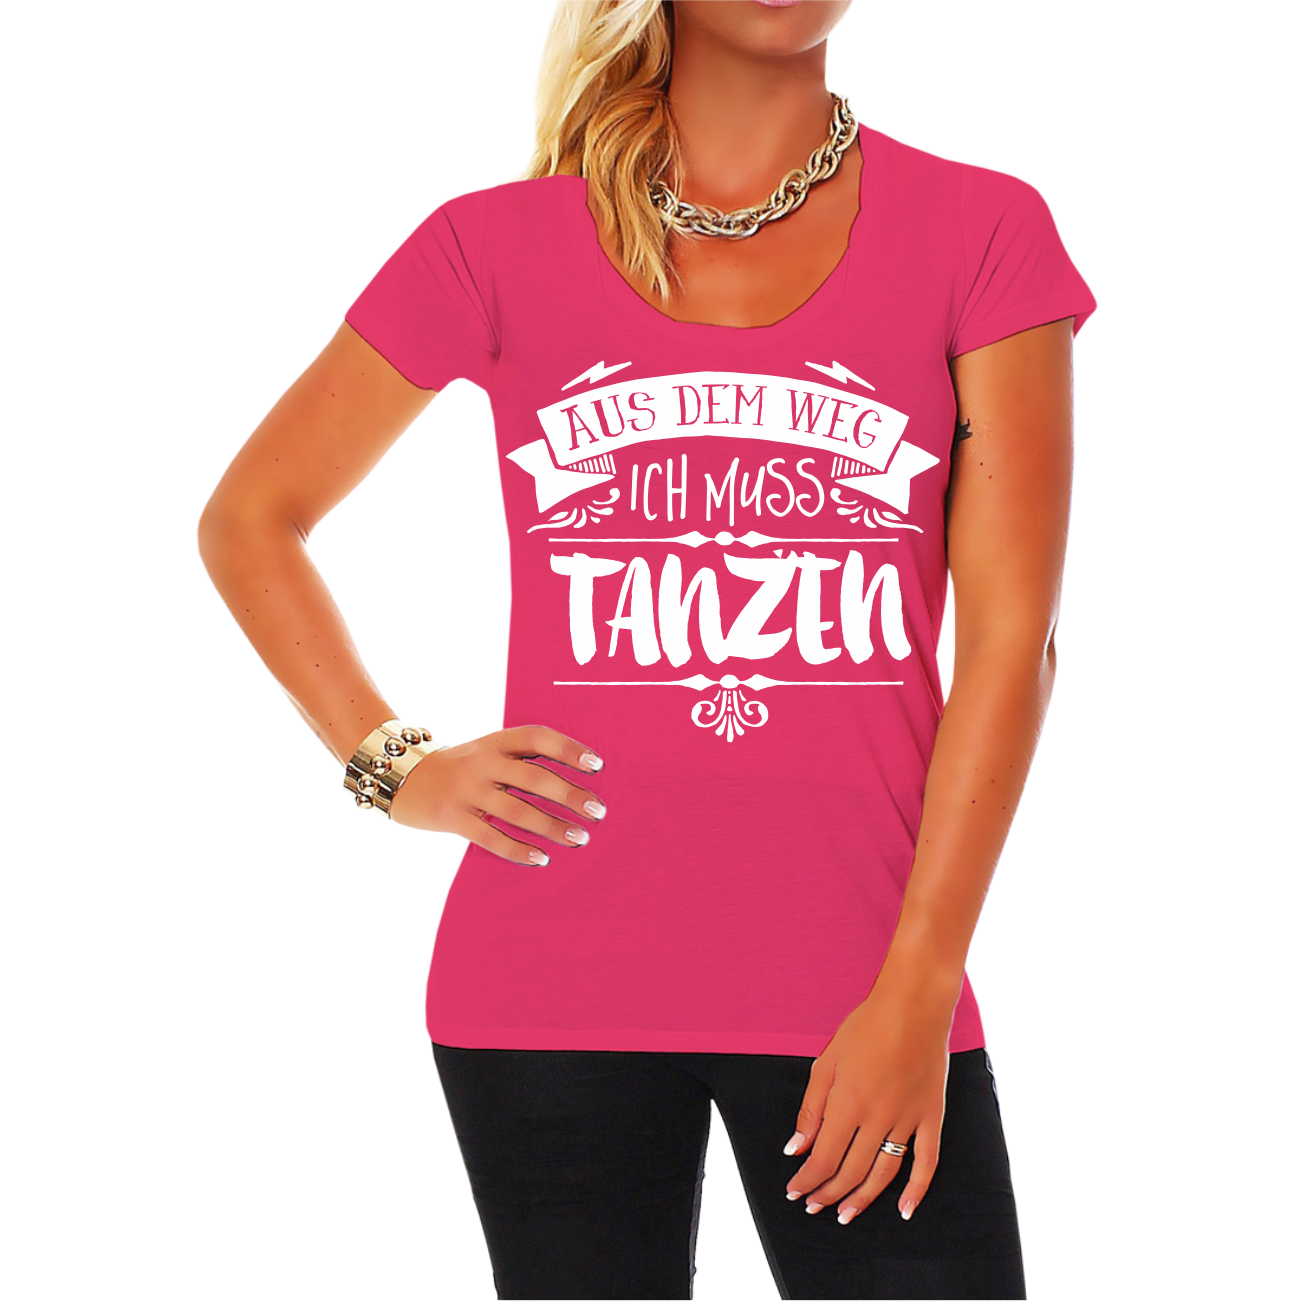 frauen m dchen damen t shirt aus dem weg ich muss tanzen spruch spr che disco ebay. Black Bedroom Furniture Sets. Home Design Ideas